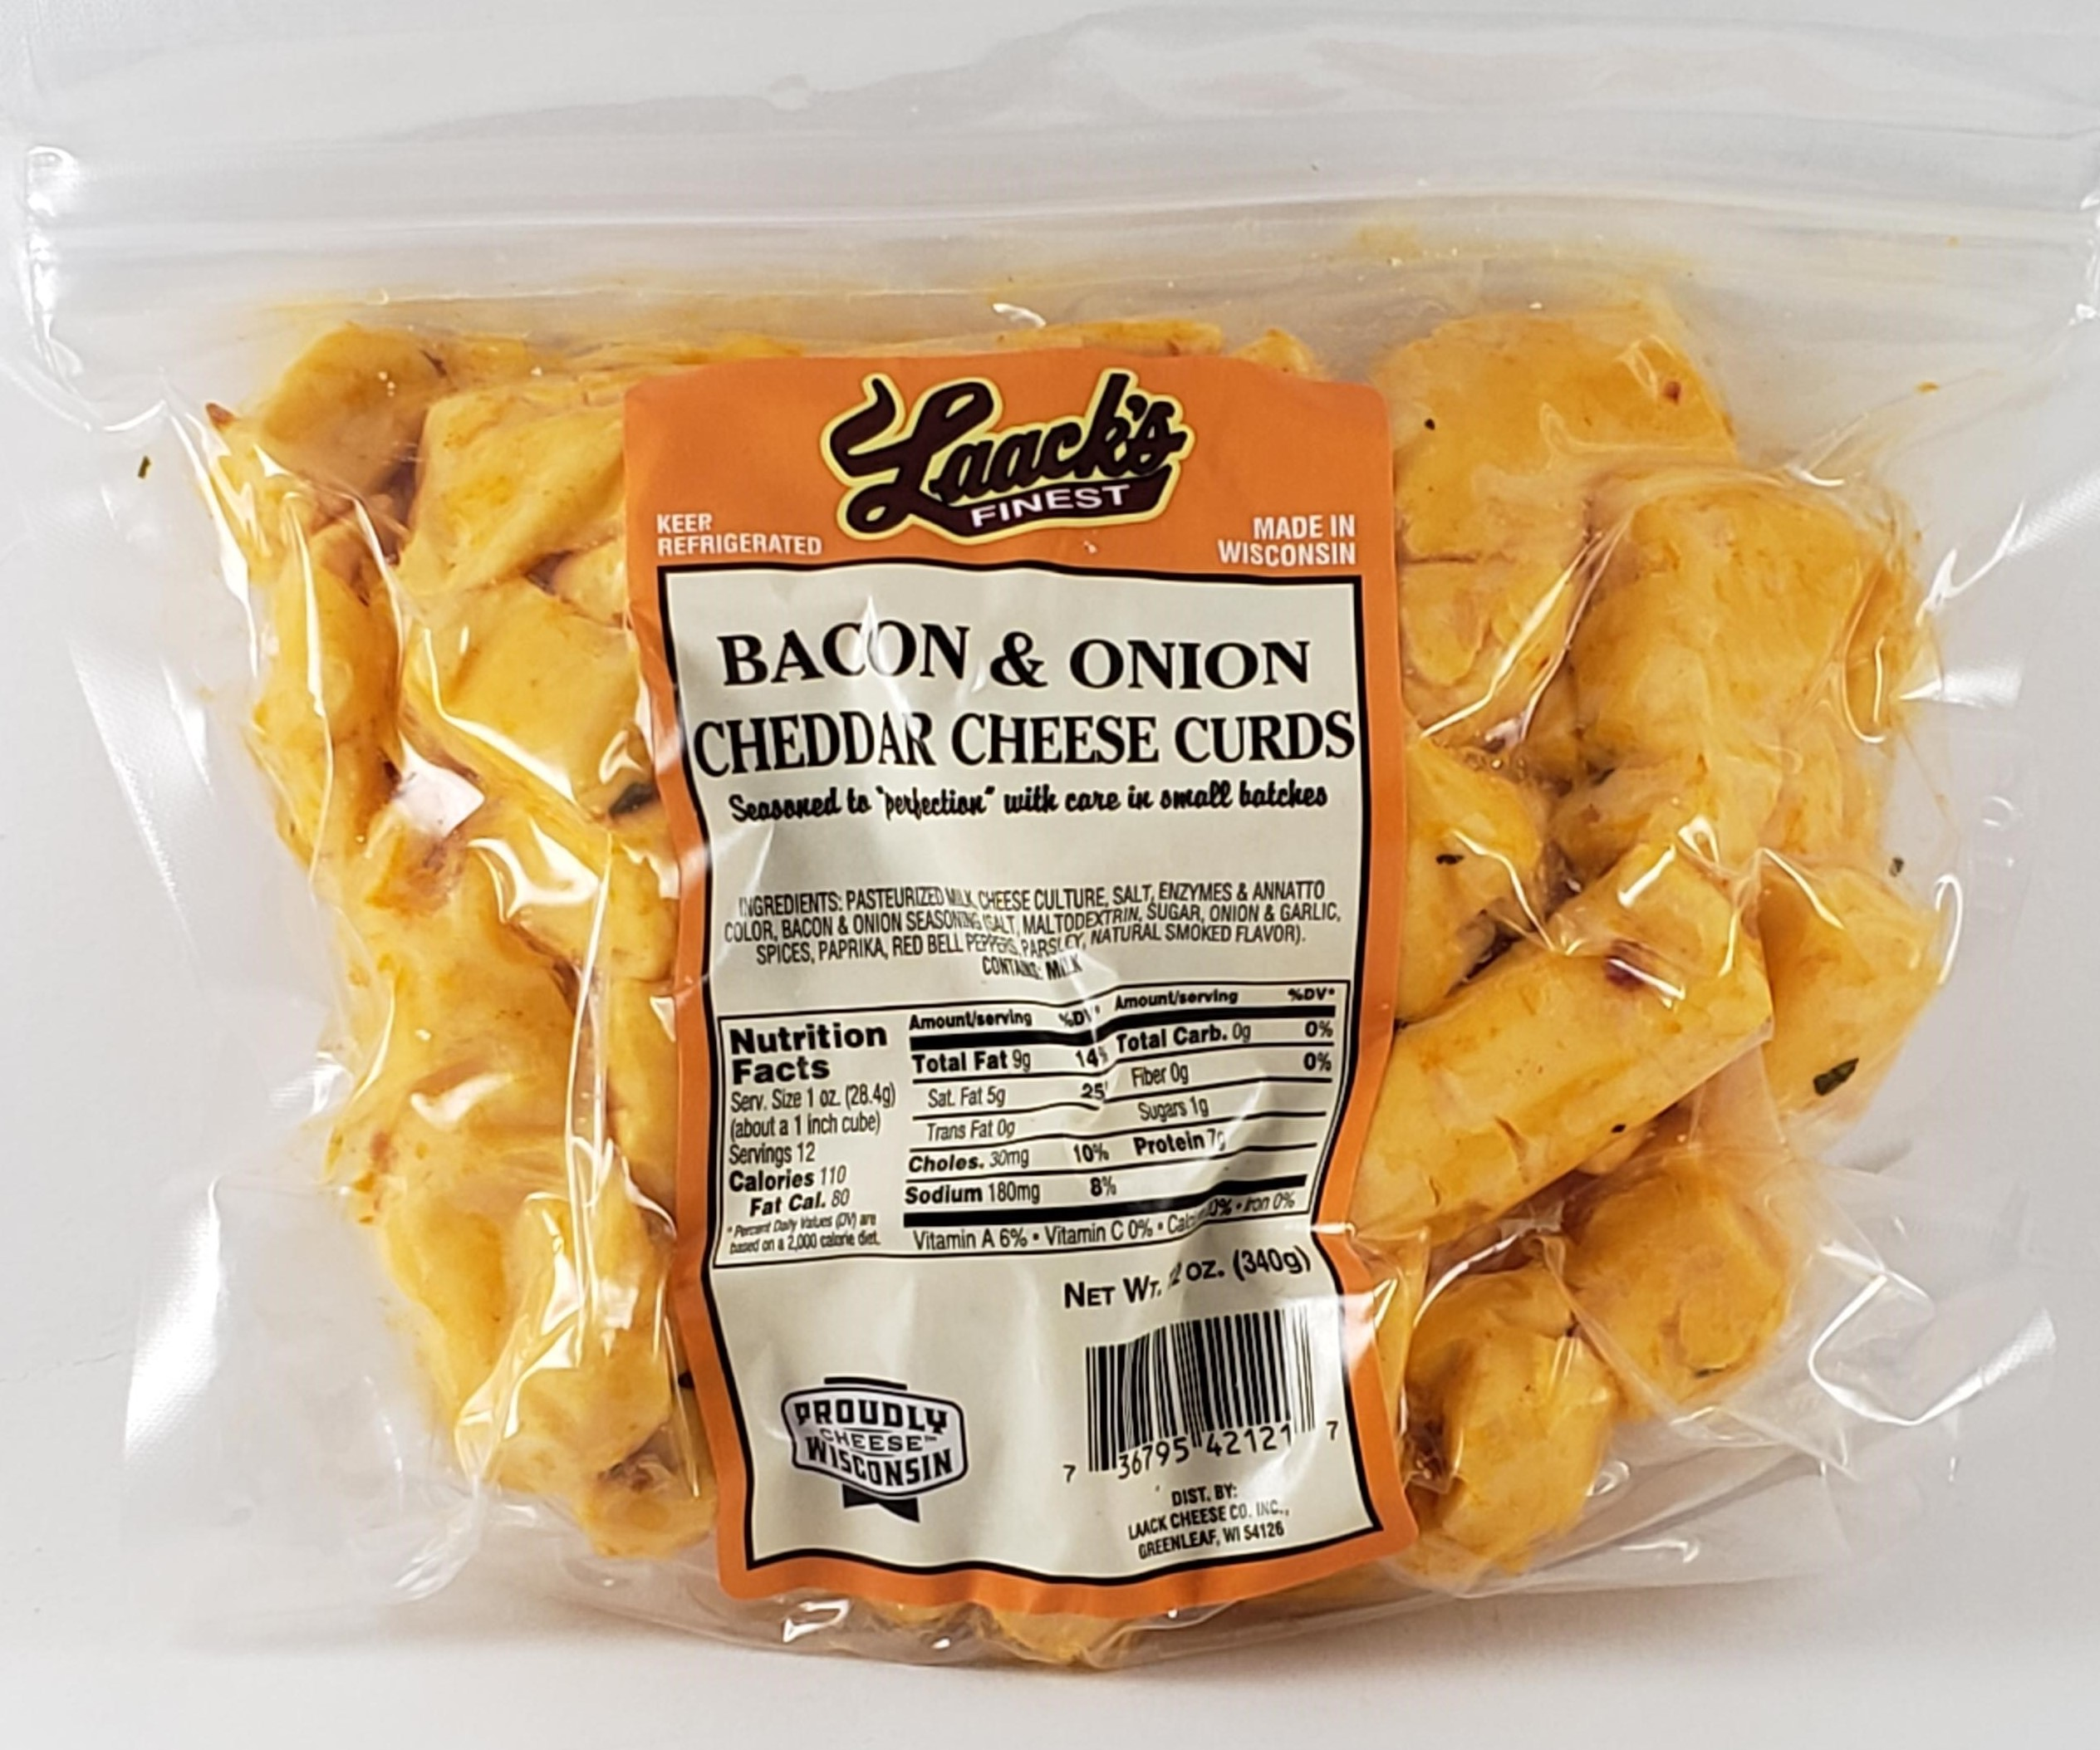 Bacon & Onion Cheddar Cheese Curds